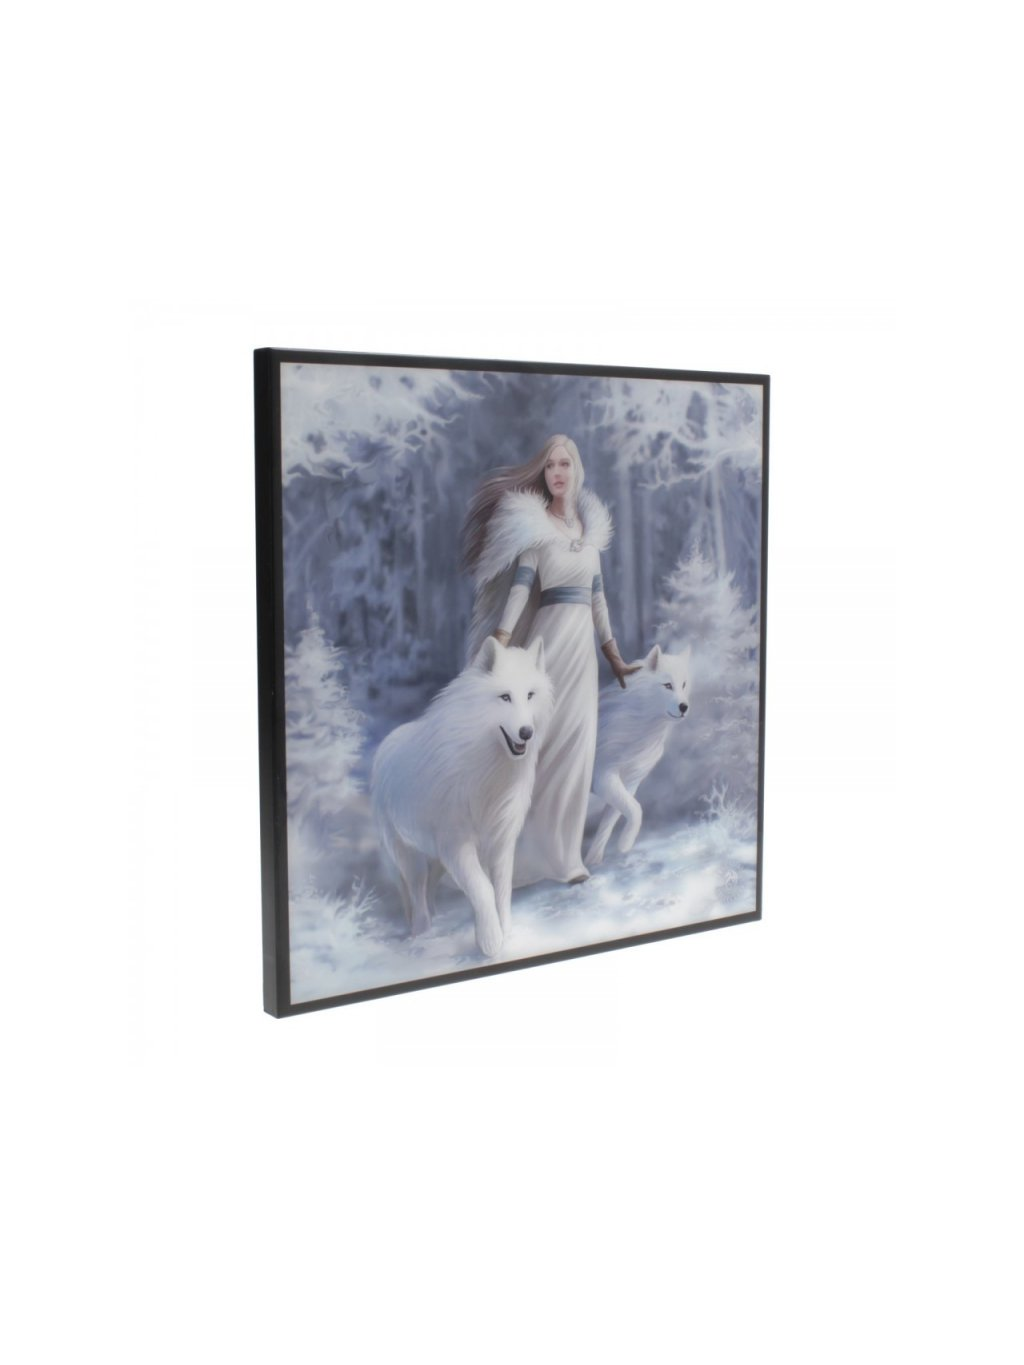 winter guardians small crystal clear picture 25cm